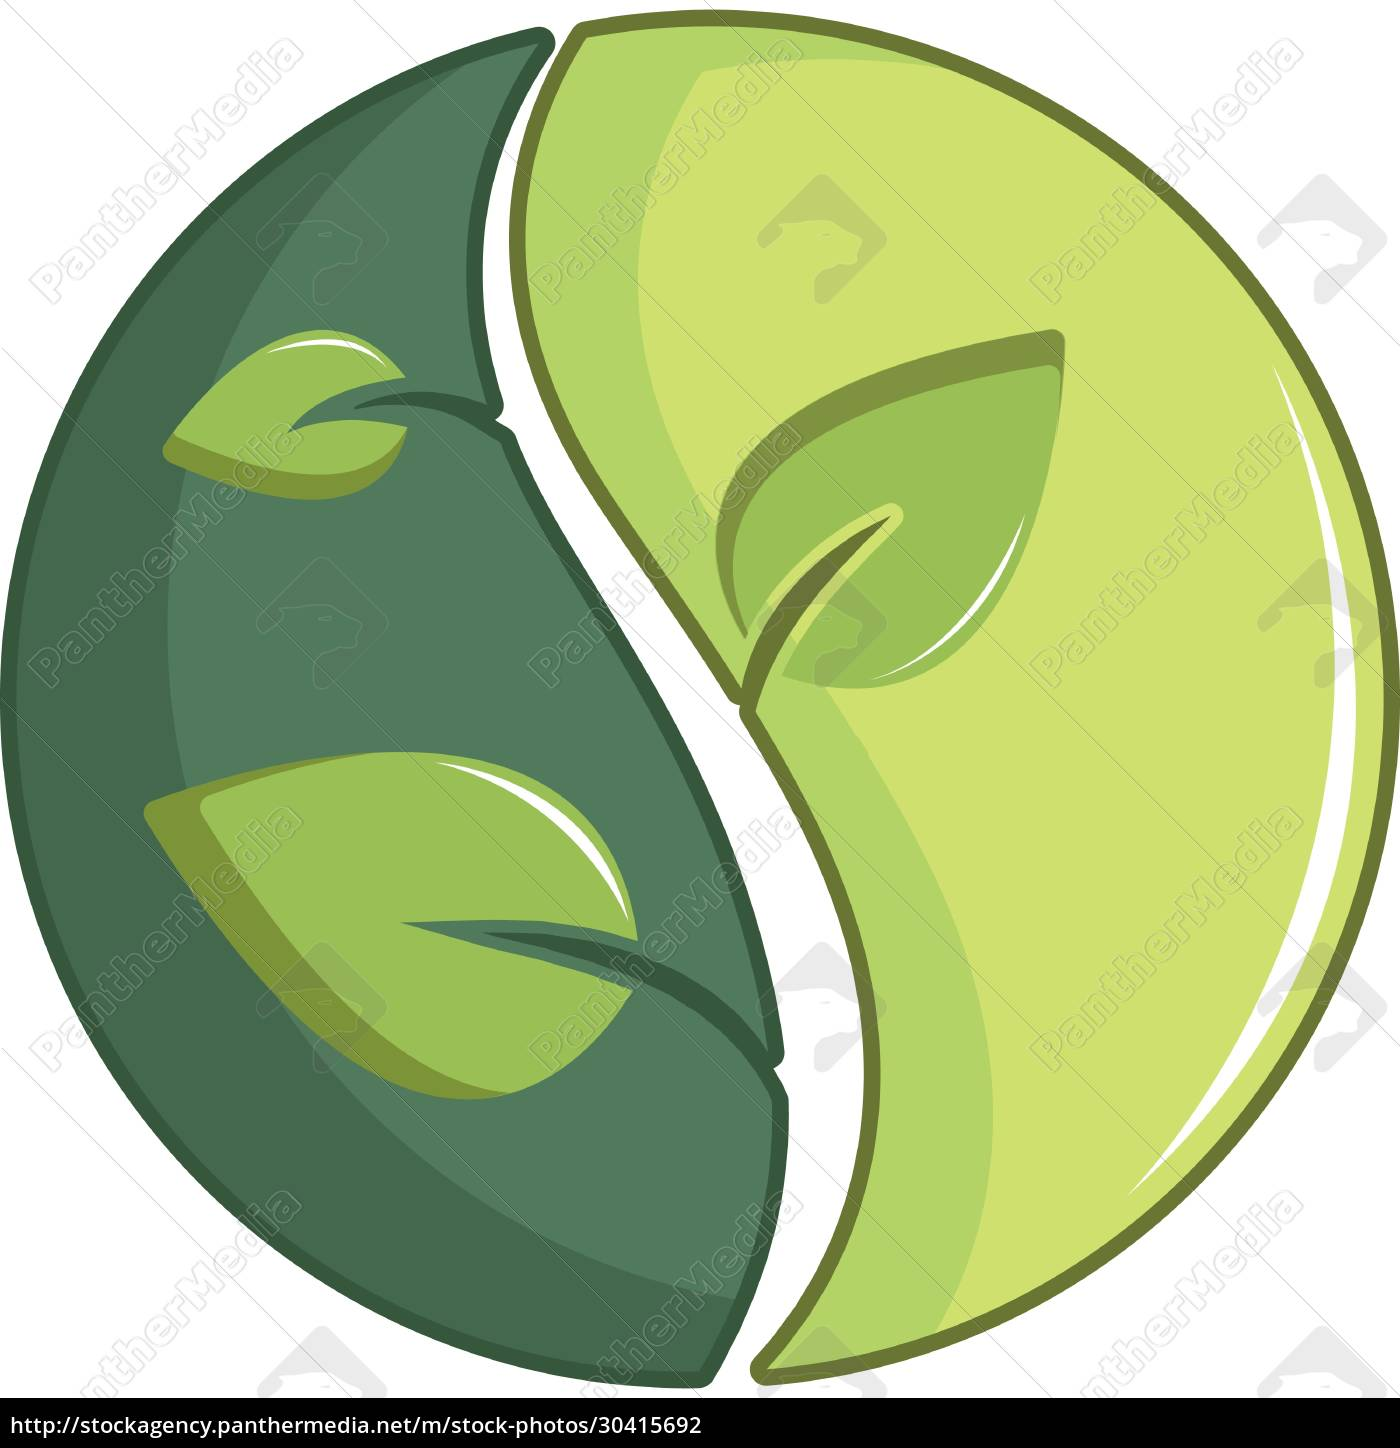 green, round, sign, with, leaves, icon, - 30415692